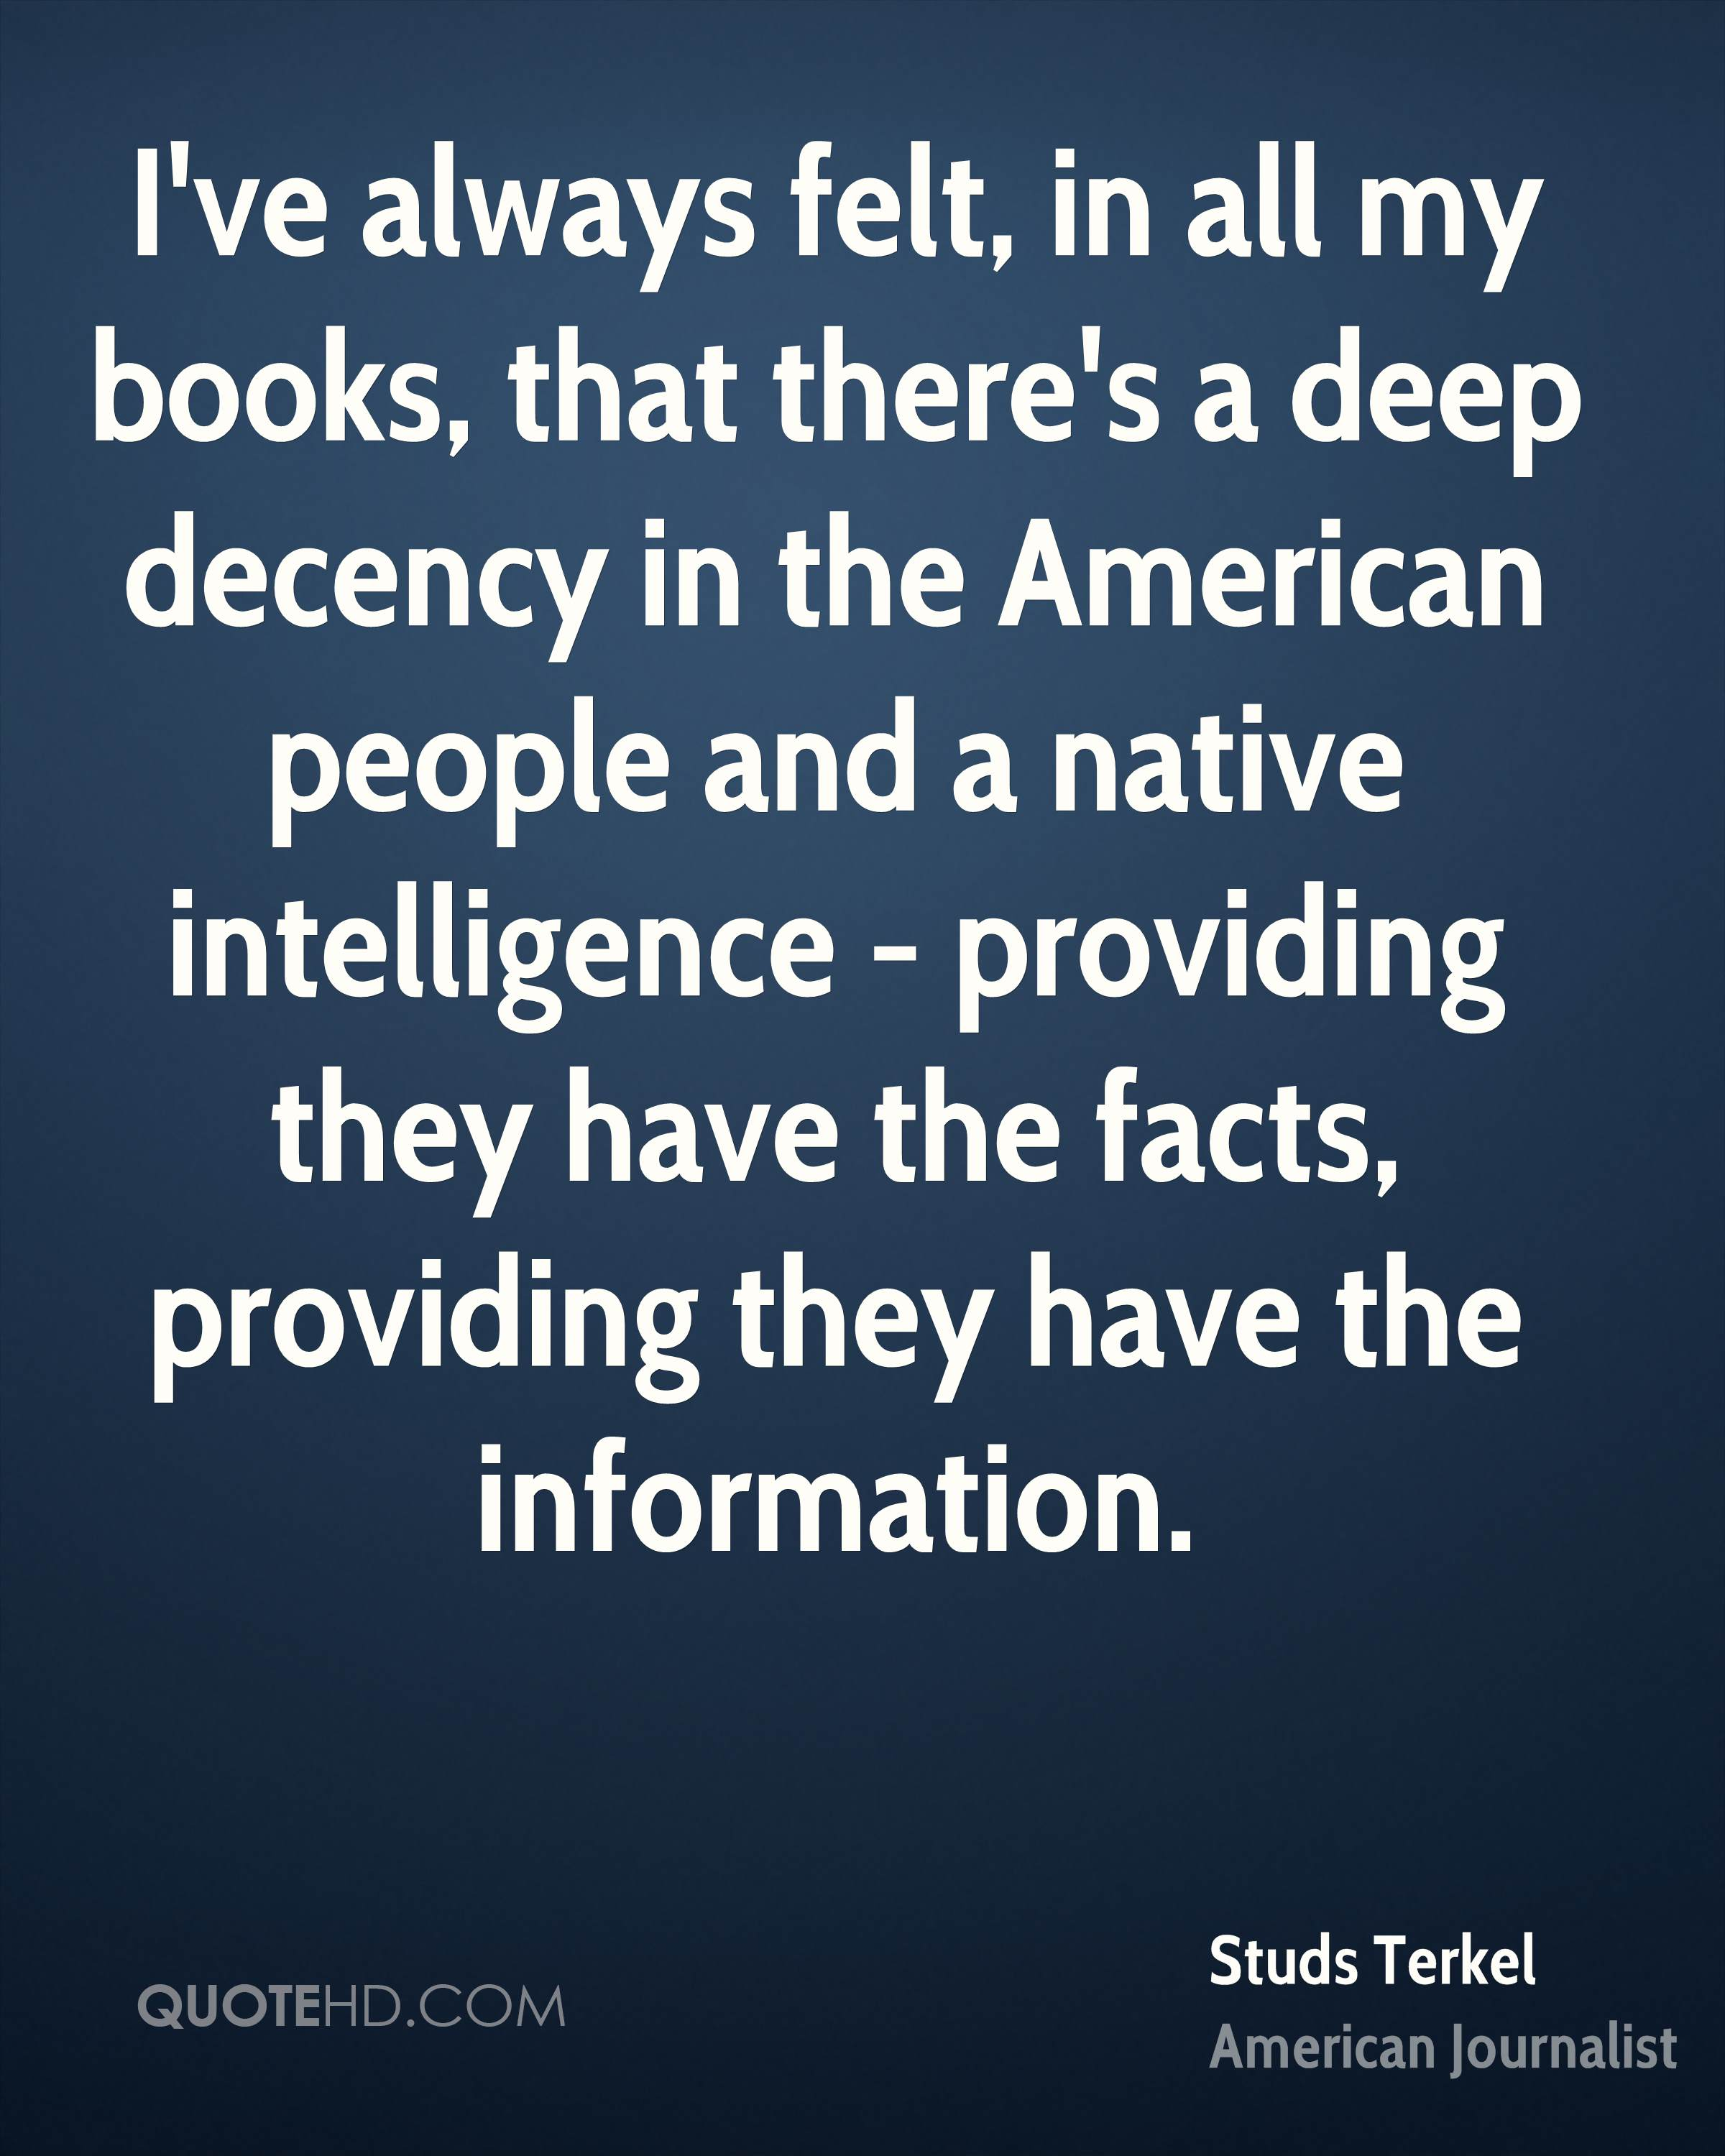 I've always felt, in all my books, that there's a deep decency in the American people and a native intelligence - providing they have the facts, providing they have the information.